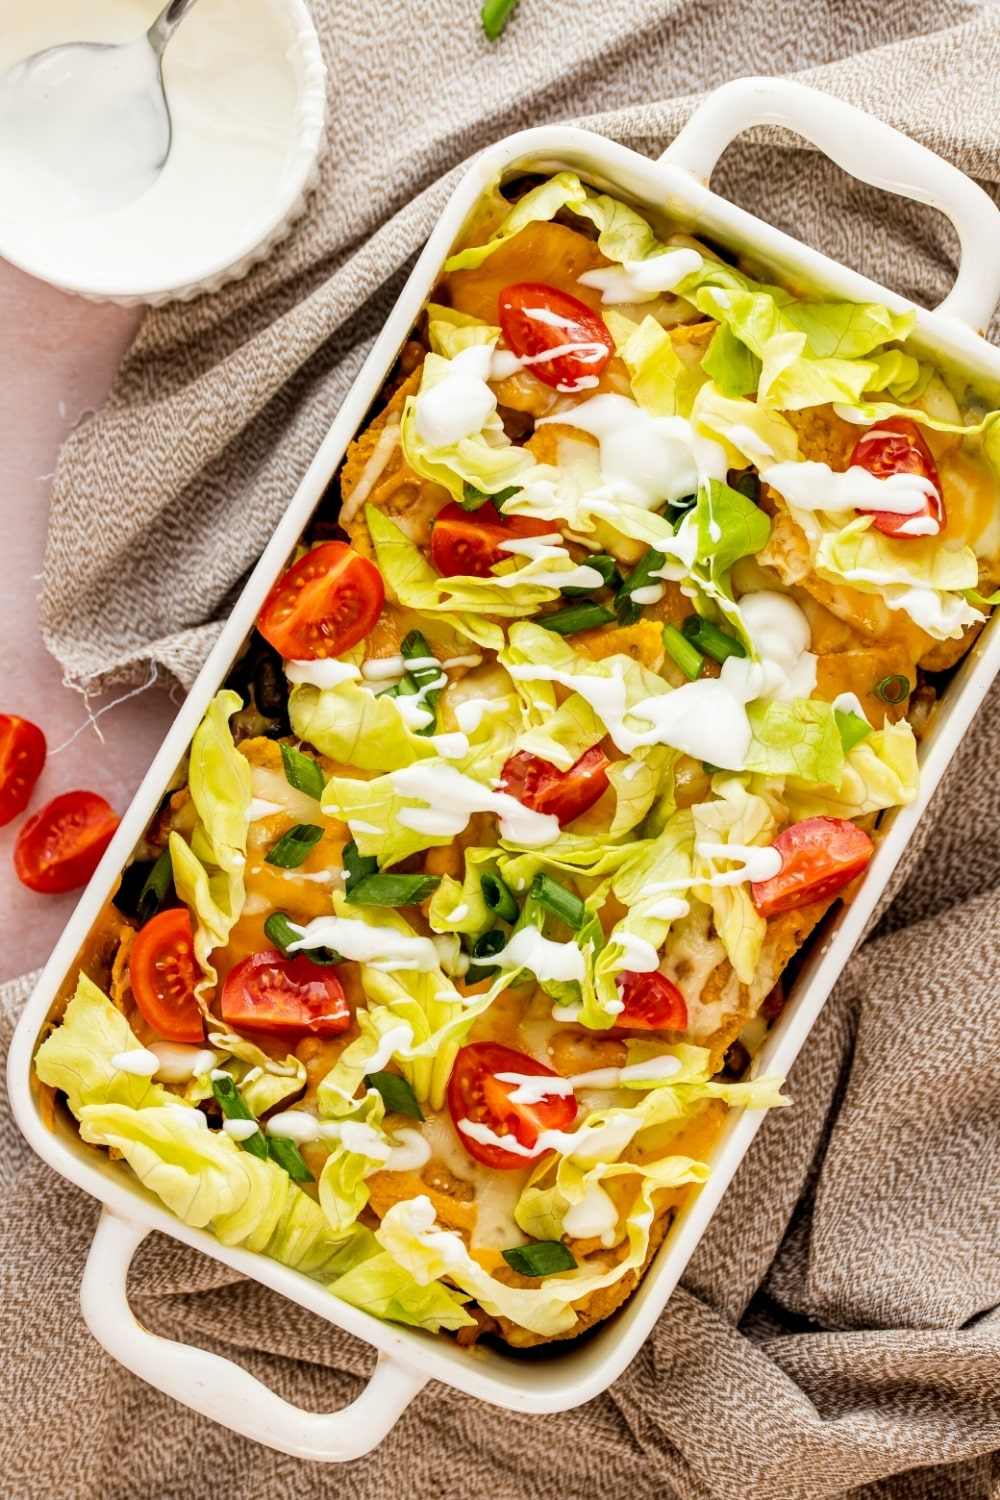 White casserole dish with walking taco casserole in it. The casserole dish is on a gray tablecloth and there is part of a small white bowl of sour cream behind it.